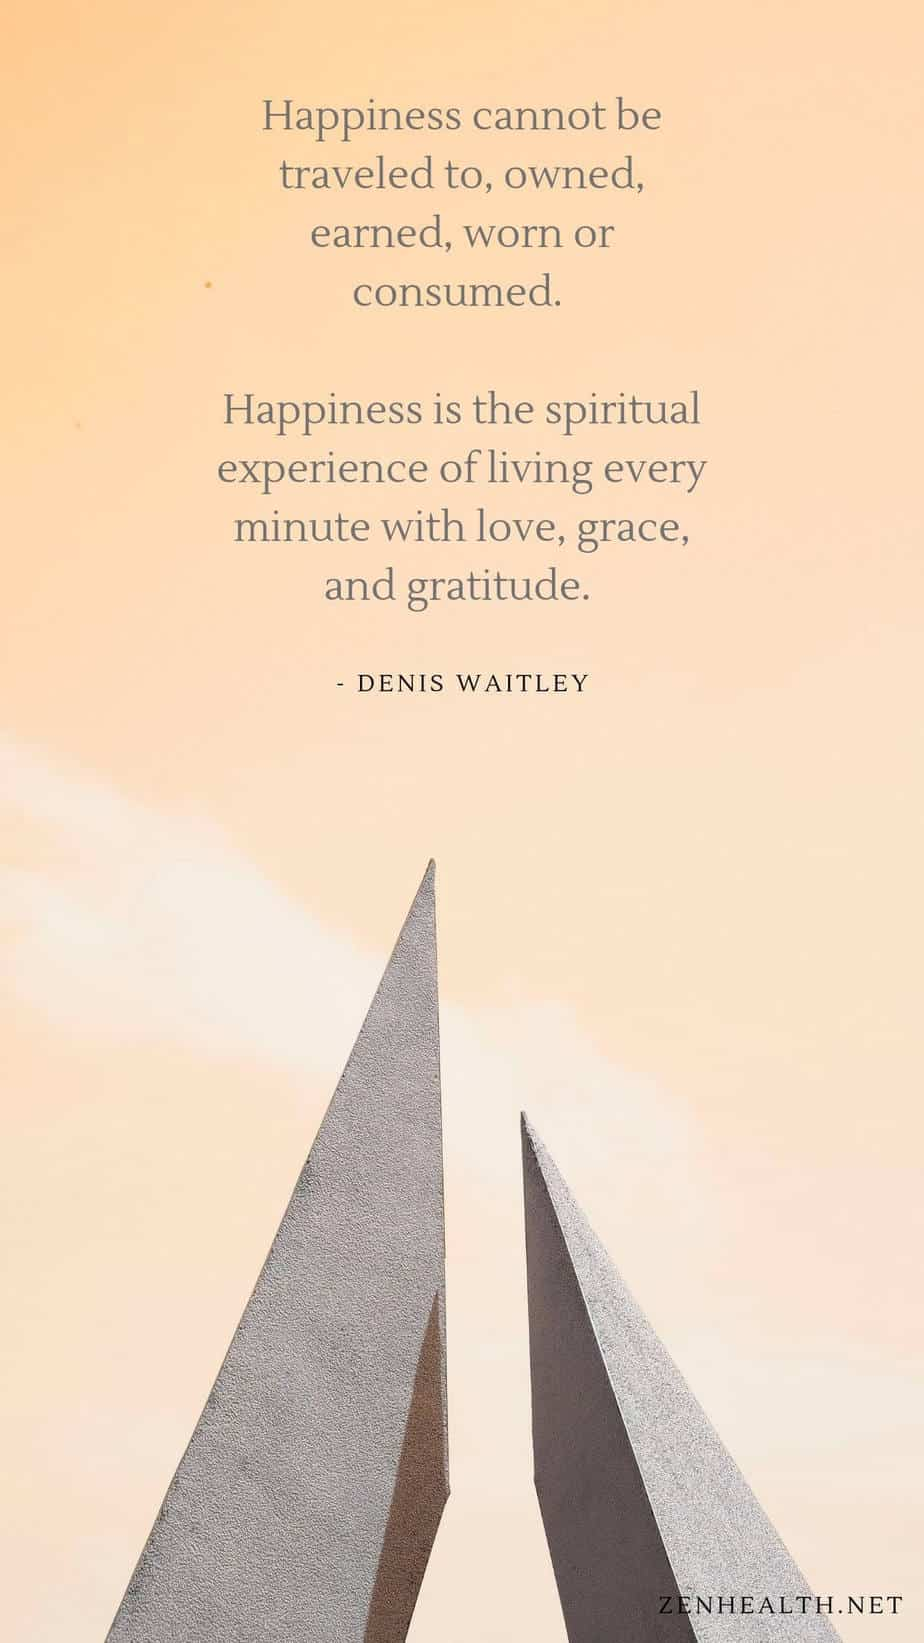 Happiness cannot be traveled to, owned, earned, worn or consumed. Happiness is the spiritual experience of living every minute with love, grace, and gratitude. - Denis Waitley